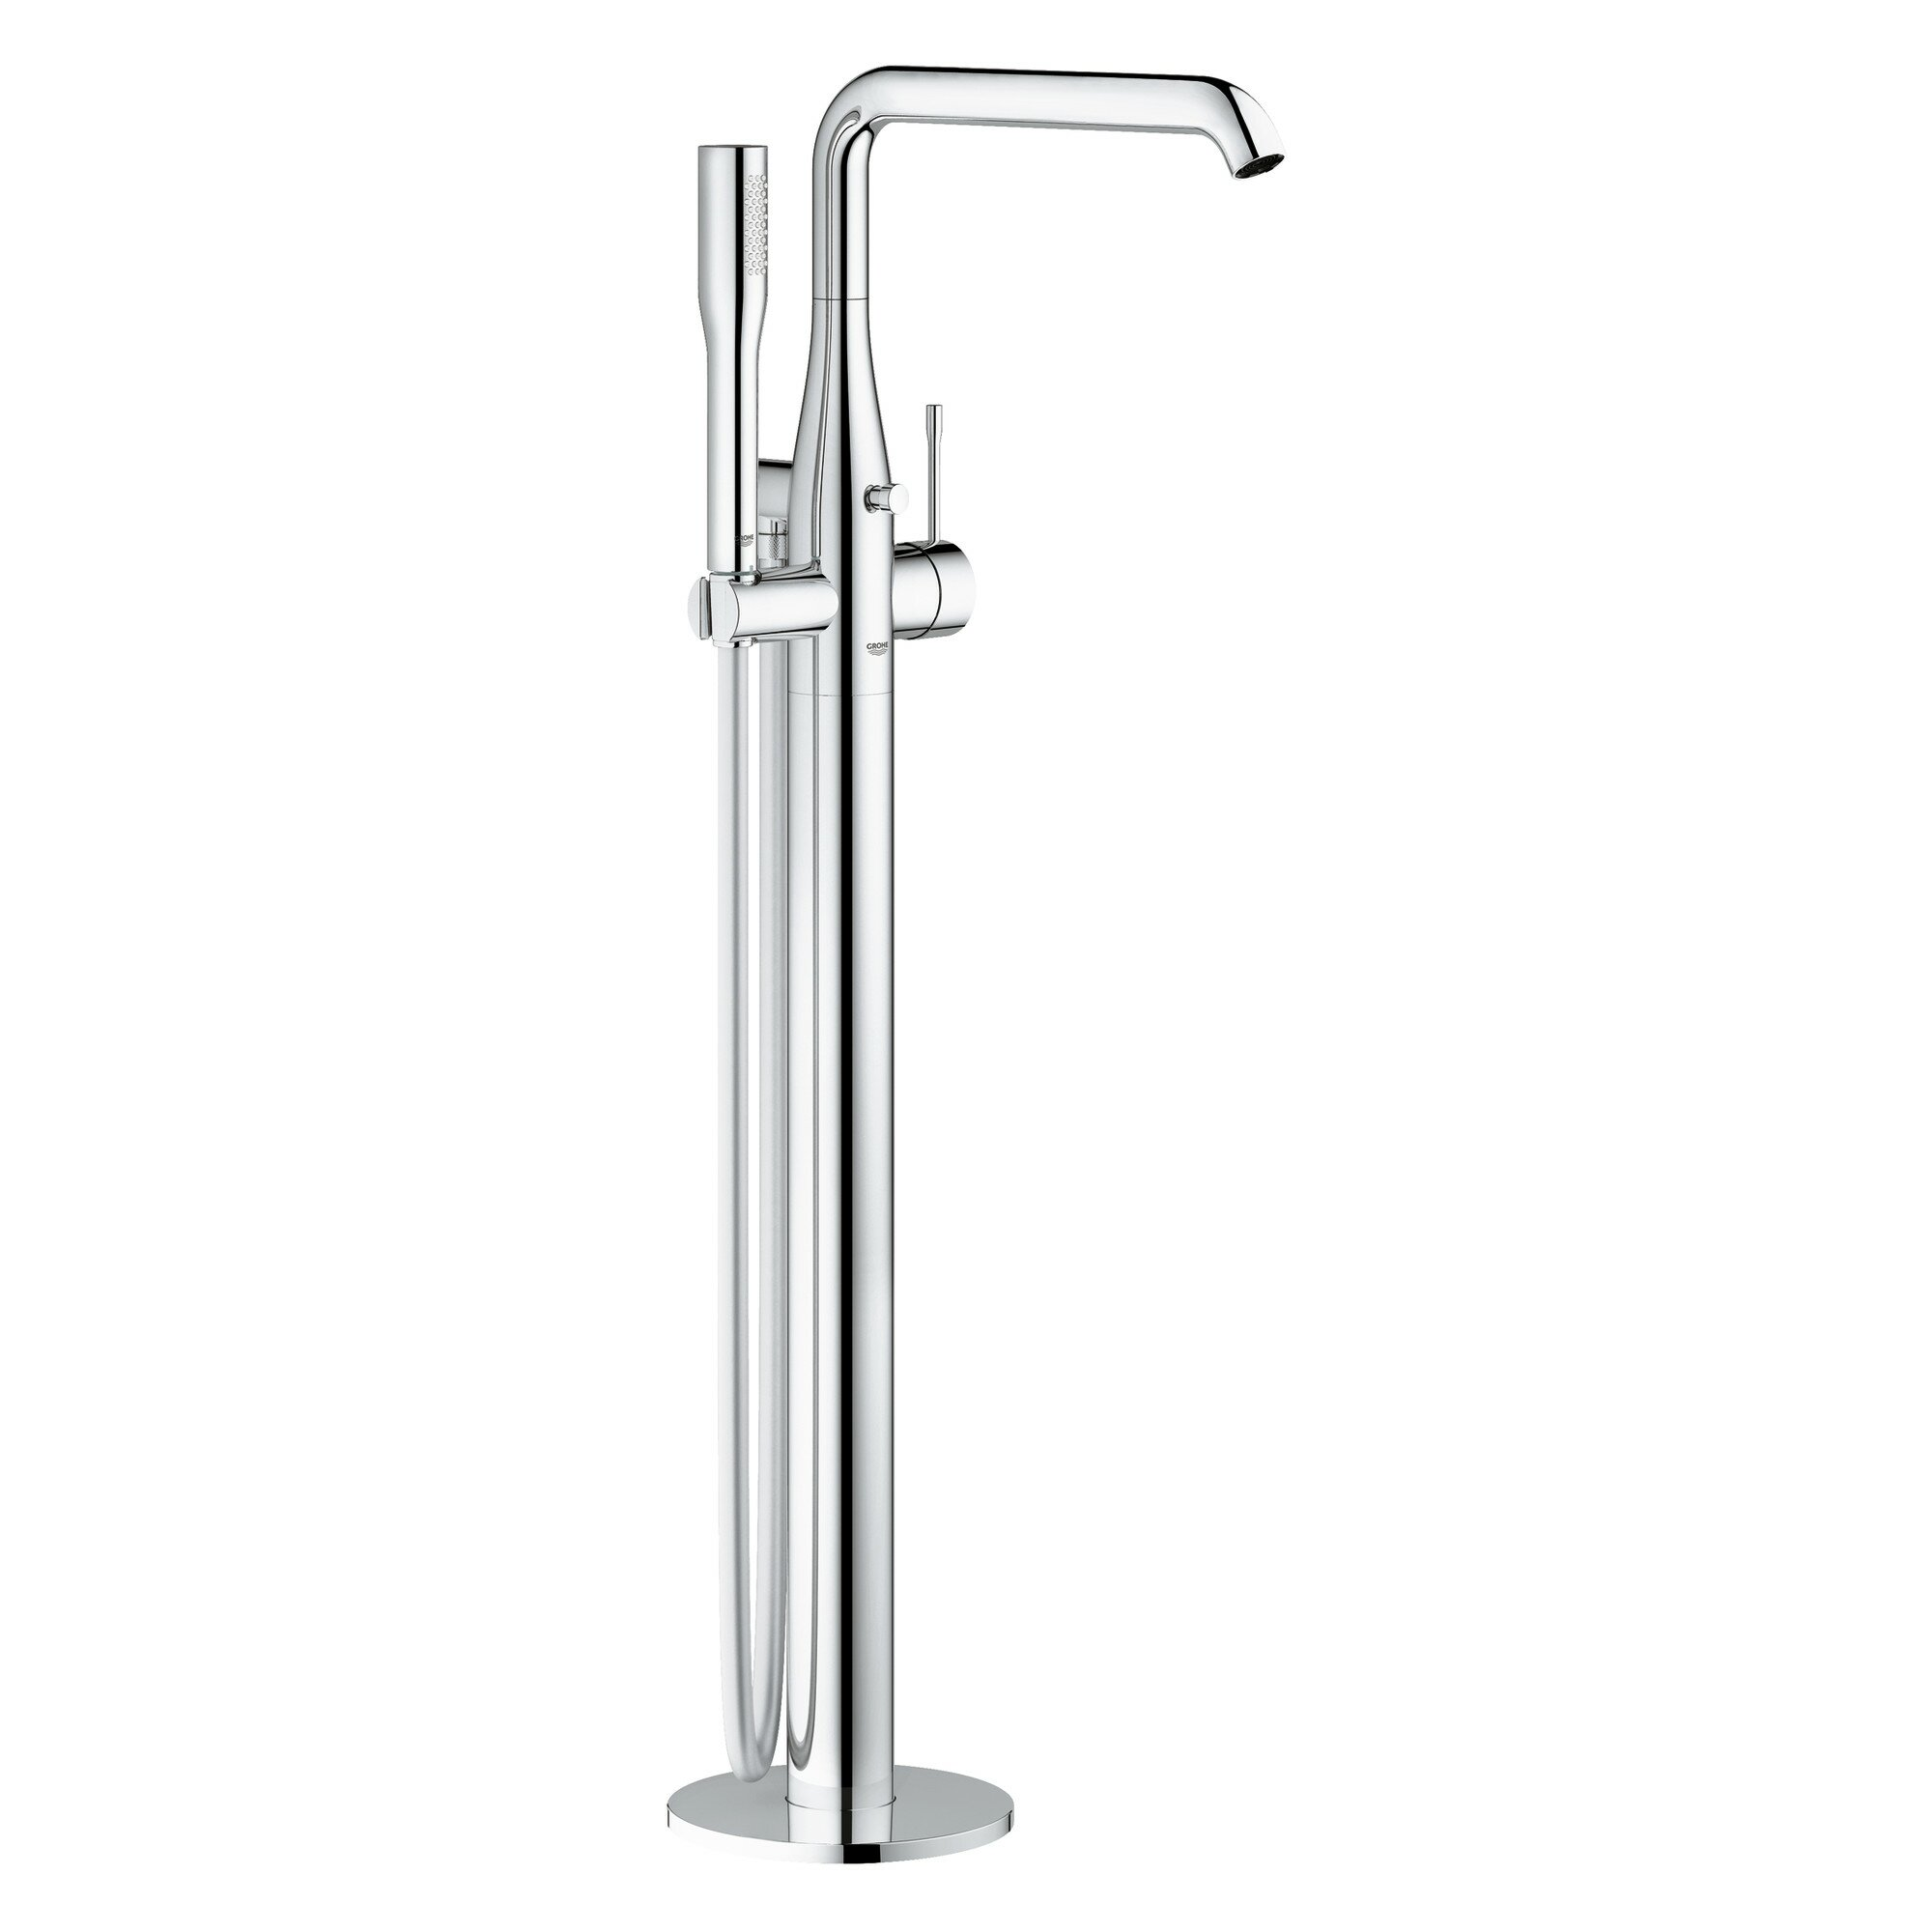 Grohe Essence Single Handle Floor Mounted Tub Filler Trim